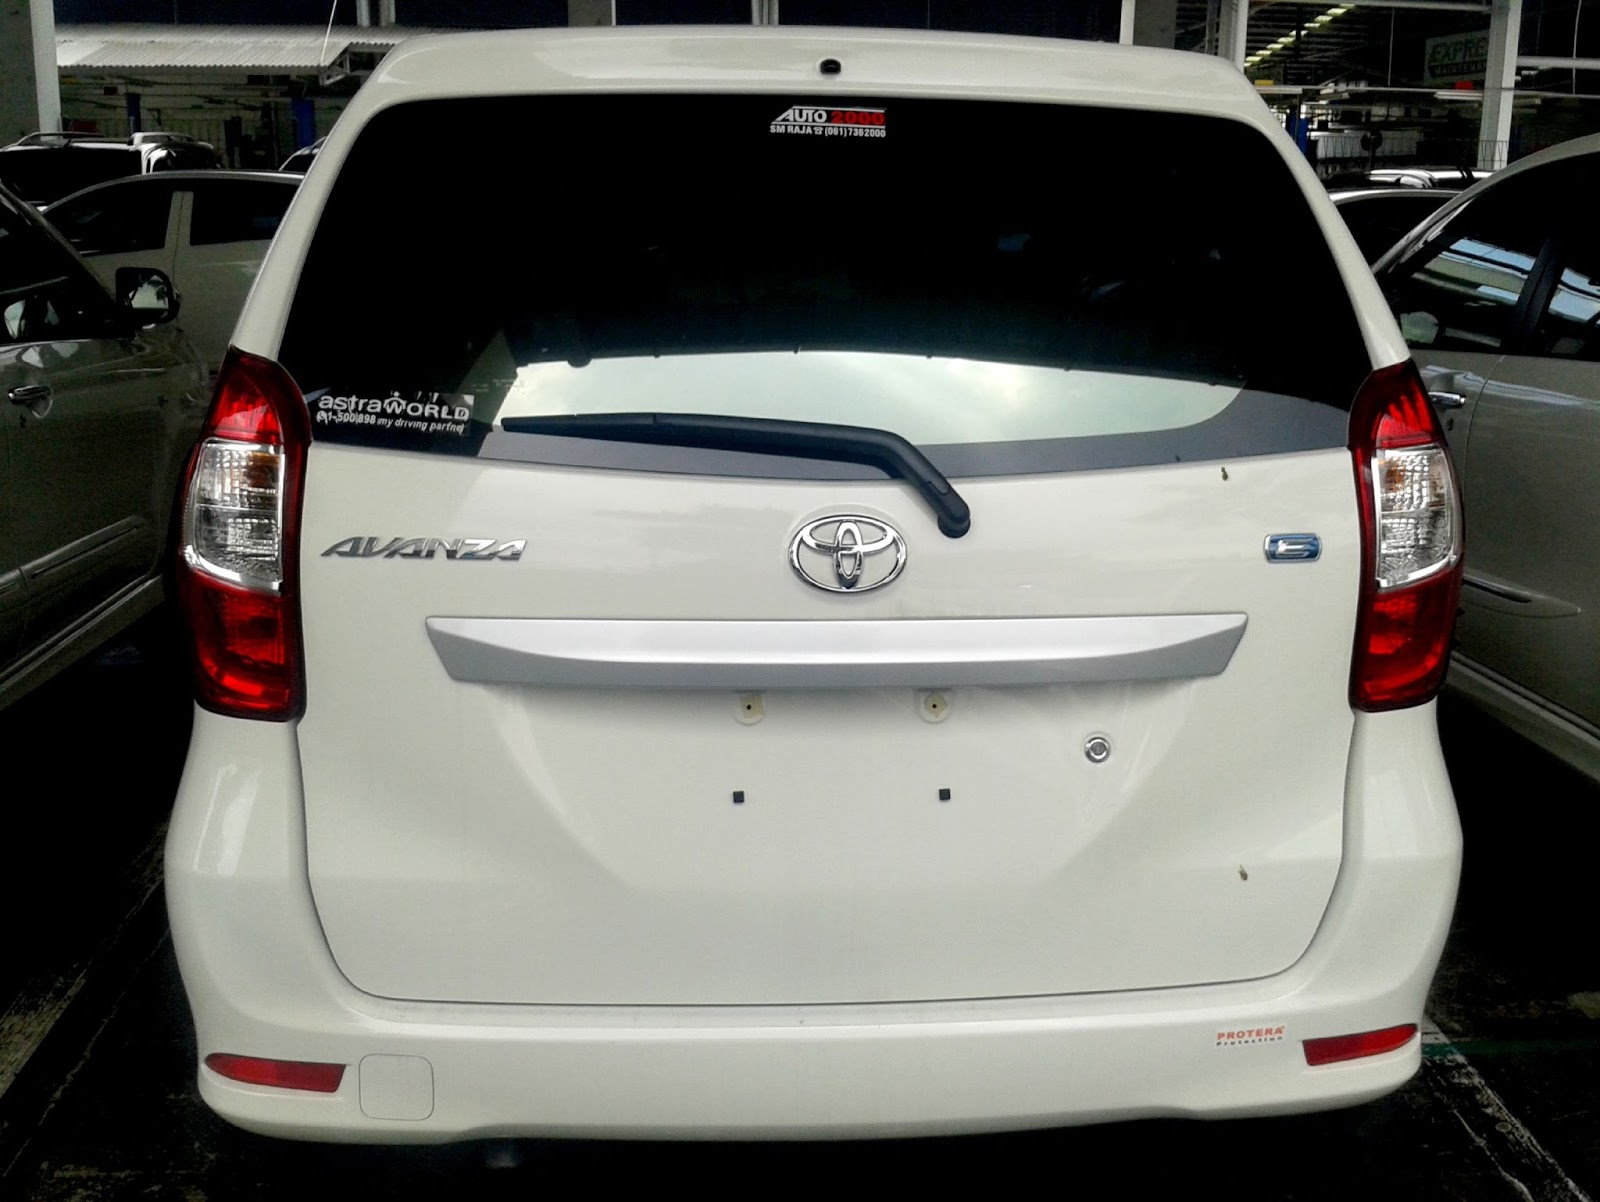 grand all new avanza 2016 dijual type e 1 3 harga toyota auto 2000 medan